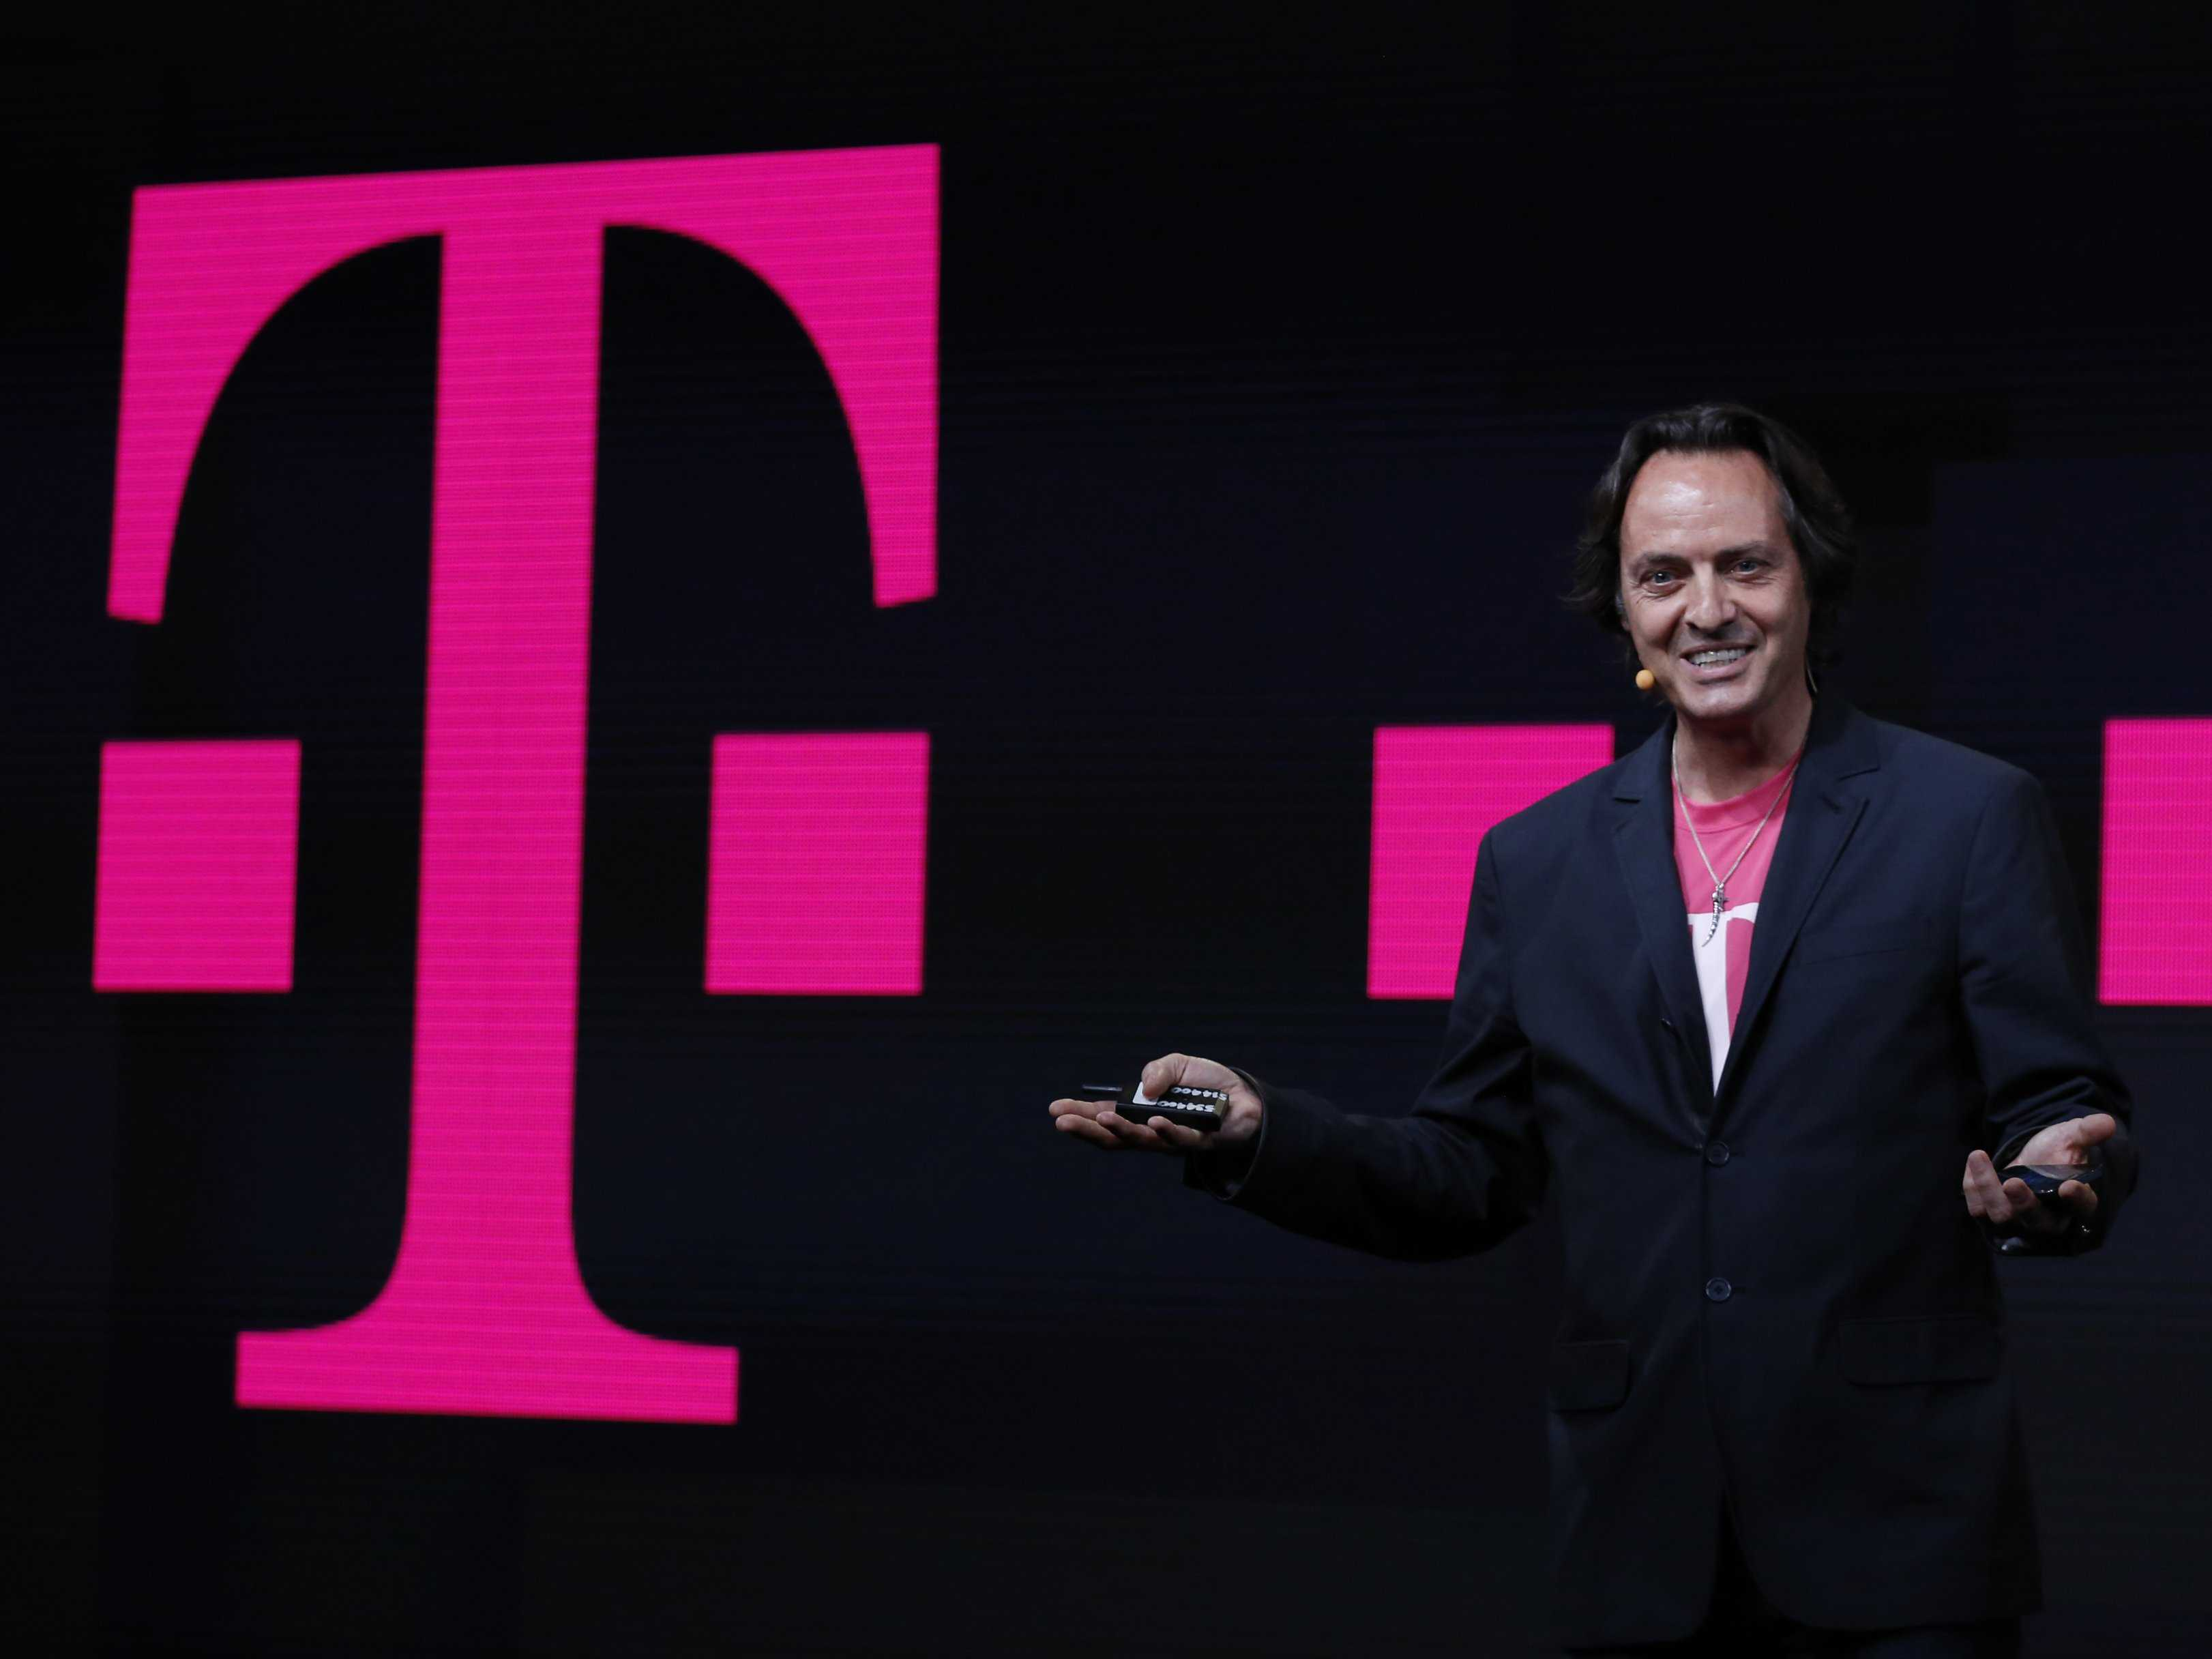 even-though-verizon-tried-its-best-to-keep-me-i-still-switched-to-t-mobile-because-its-a-better-deal